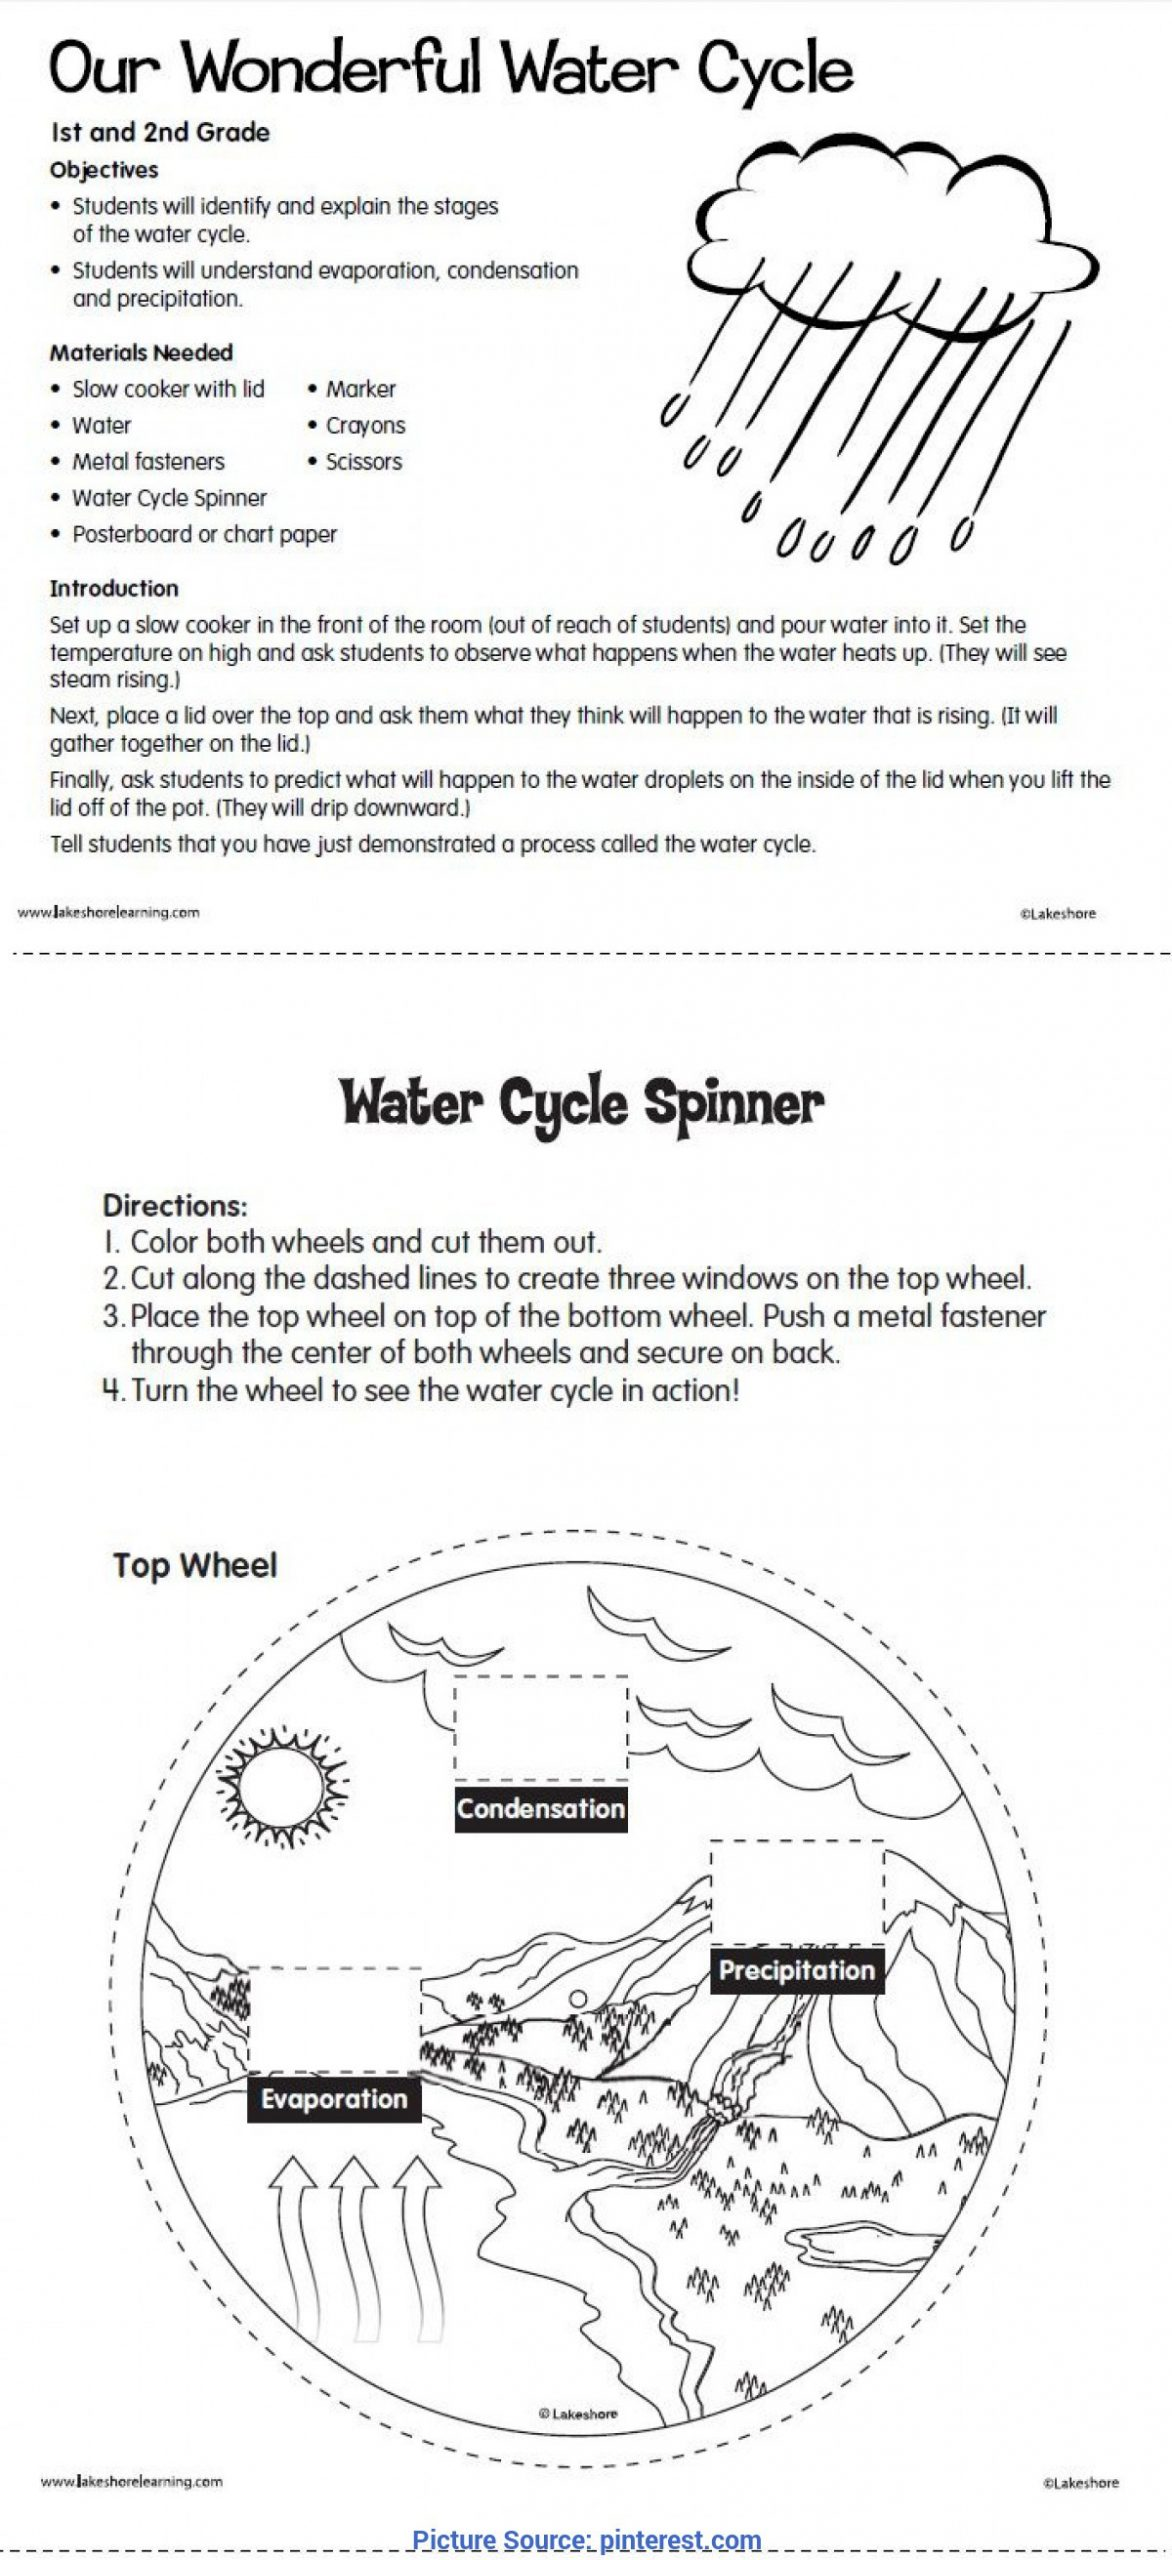 Water Cycle Worksheets 2nd Grade Typical 2nd Grade Lesson Plans Water Cycle 357 Best Water